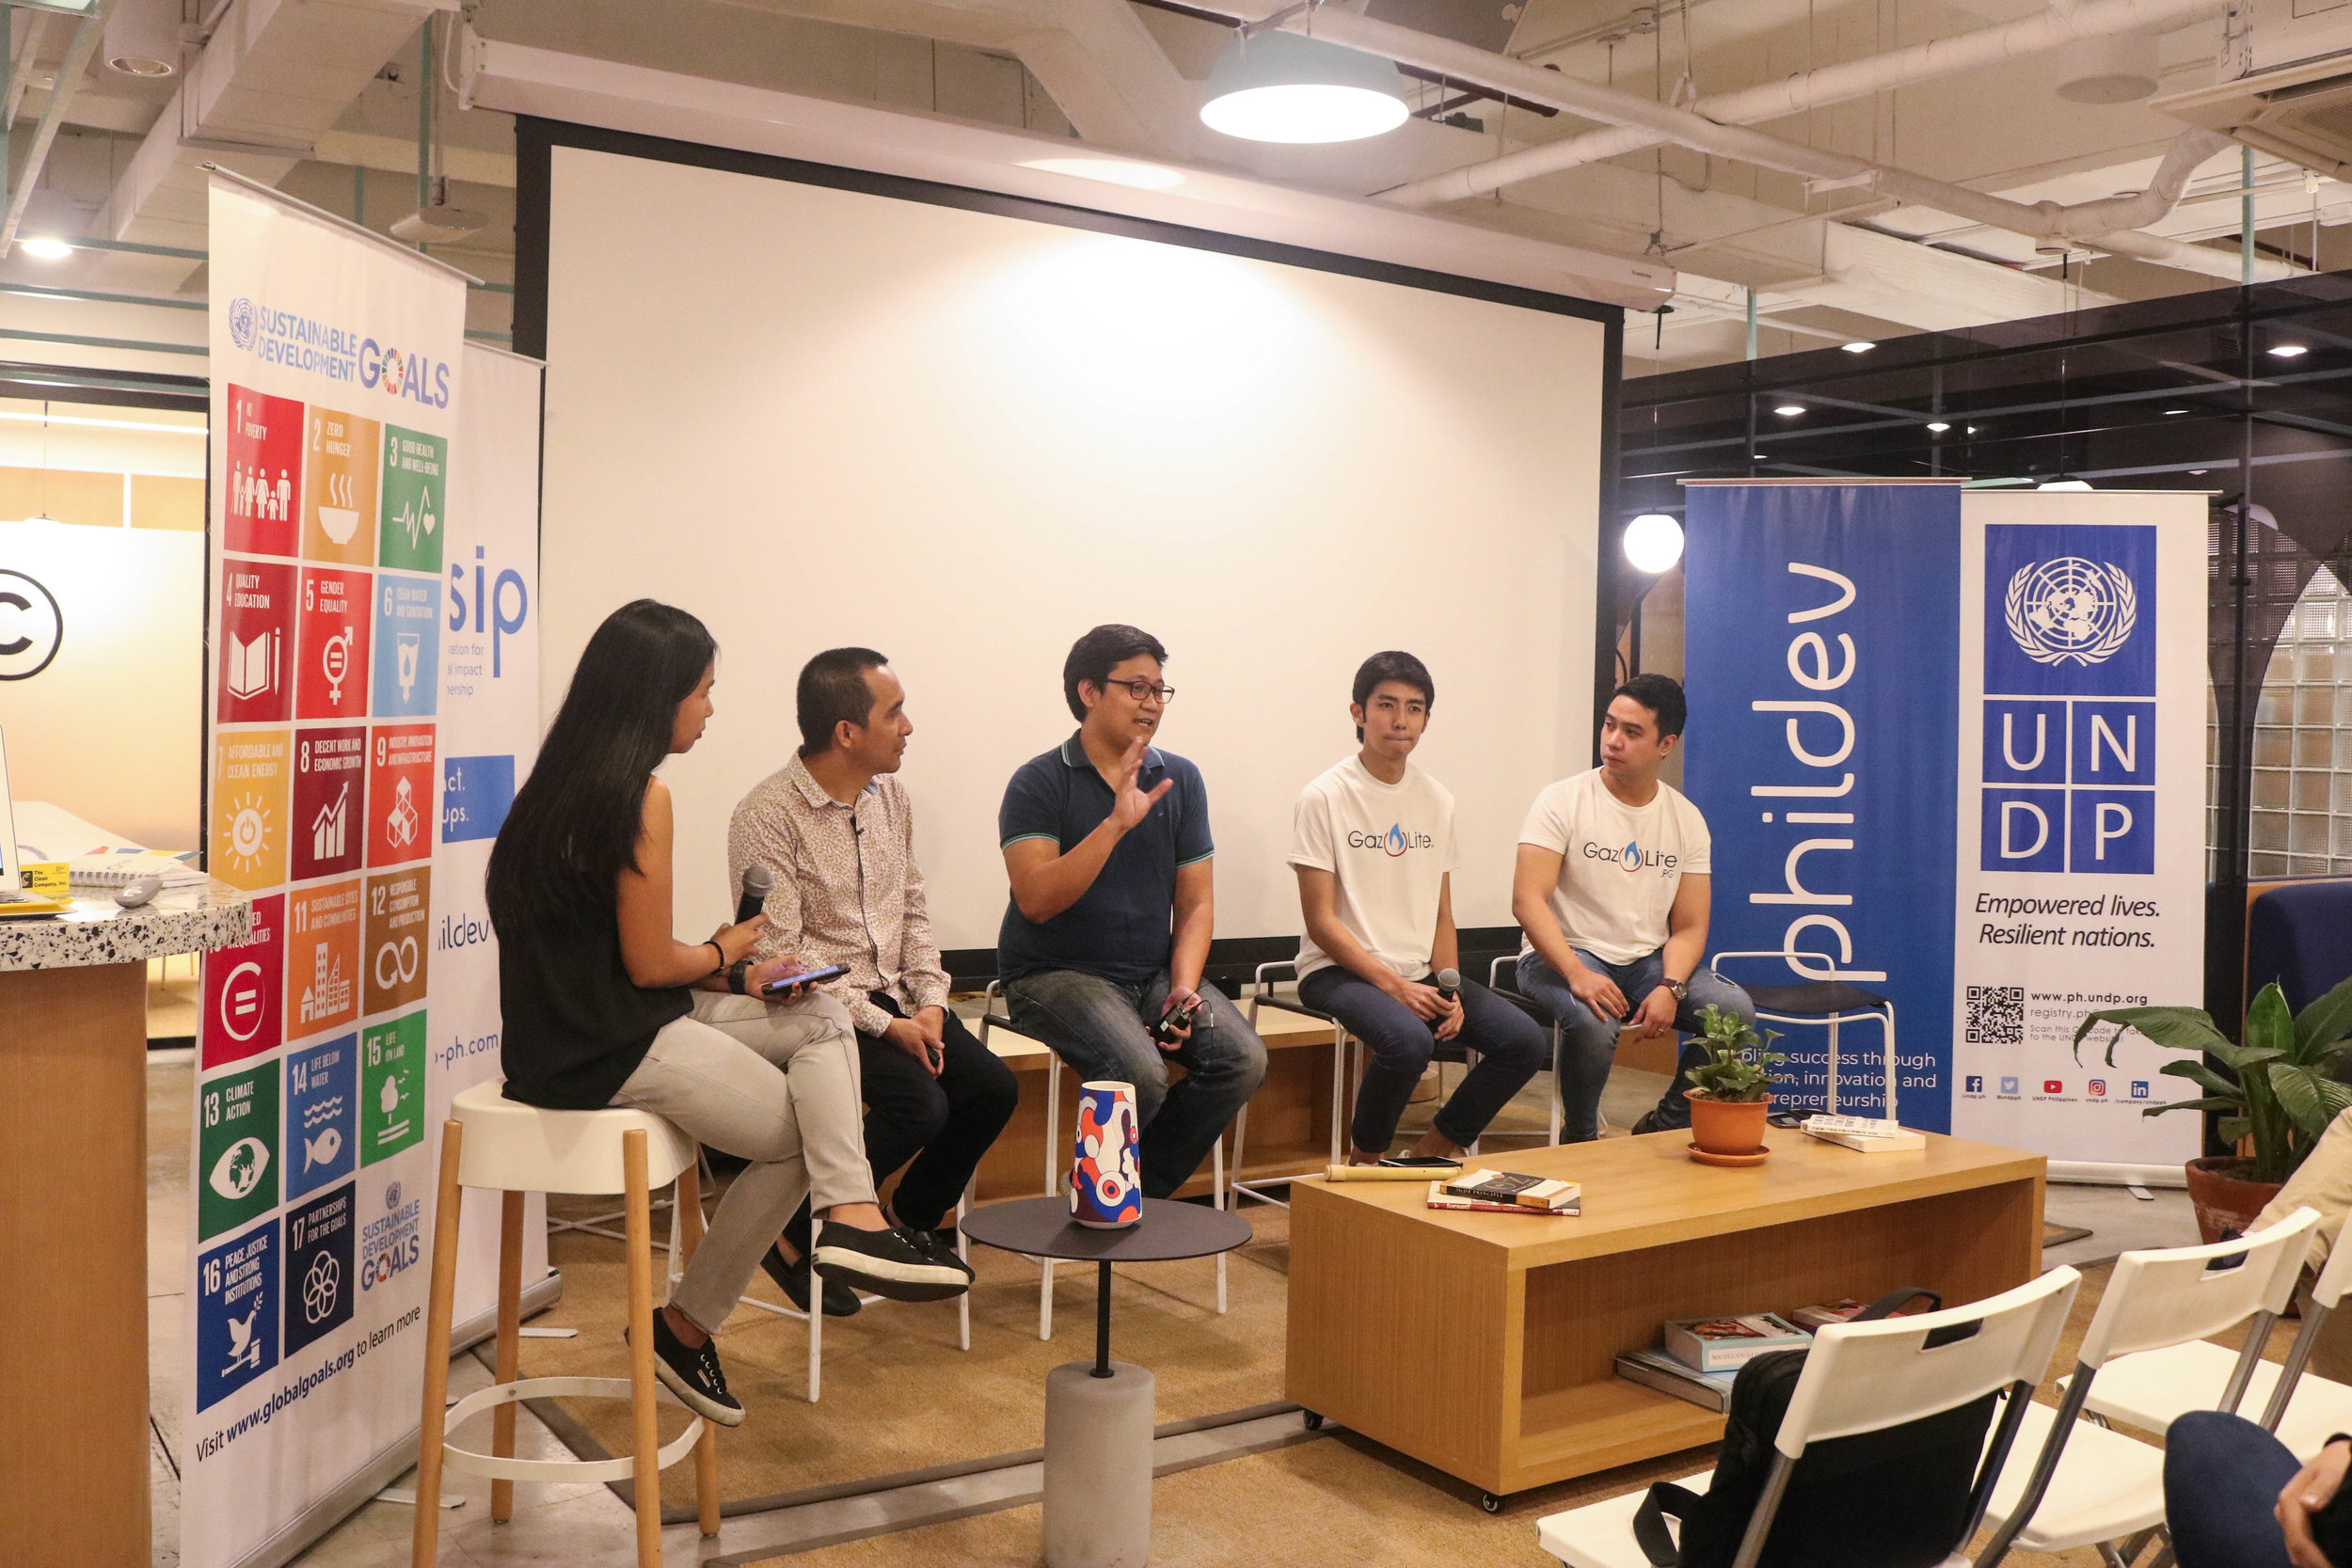 Social Enterprise Founders share their journey in the Social Impact Accelerator. (From Left to Right: Micah Asistores (Moderator), Mark Gersava (Bambuhay), EJ Arboleda (Taxumo), Matthew Par and Nathan Camat (Gaz Lite)